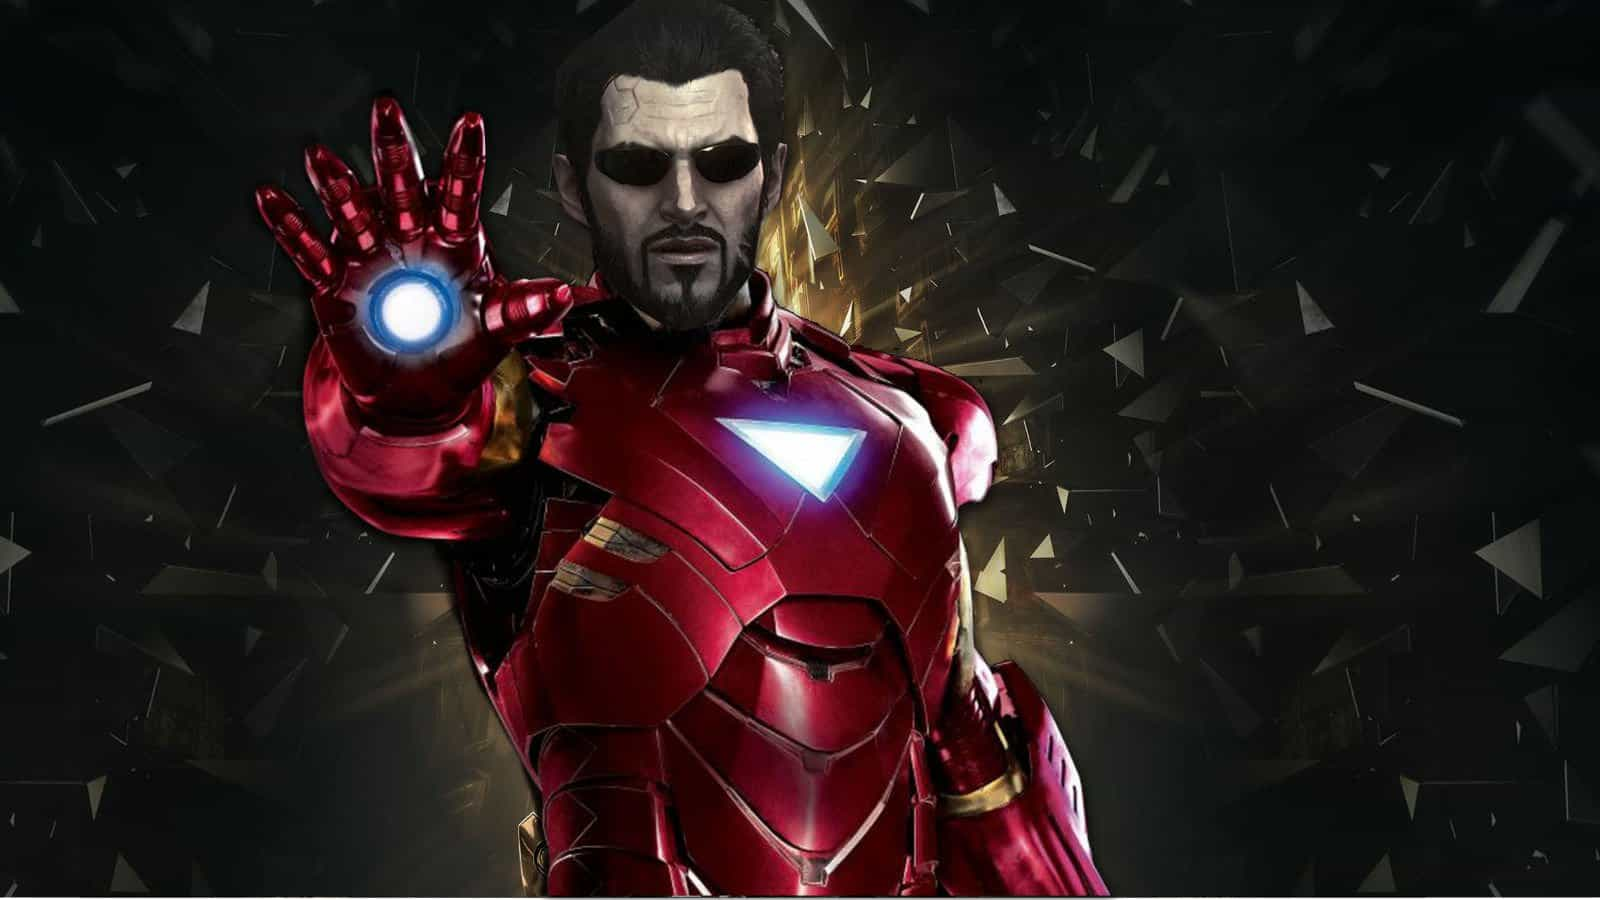 Vamers - FYI - Video Gaming - Square Enix reportedly put Deus Ex on hold in favour of Marvel Project - 02